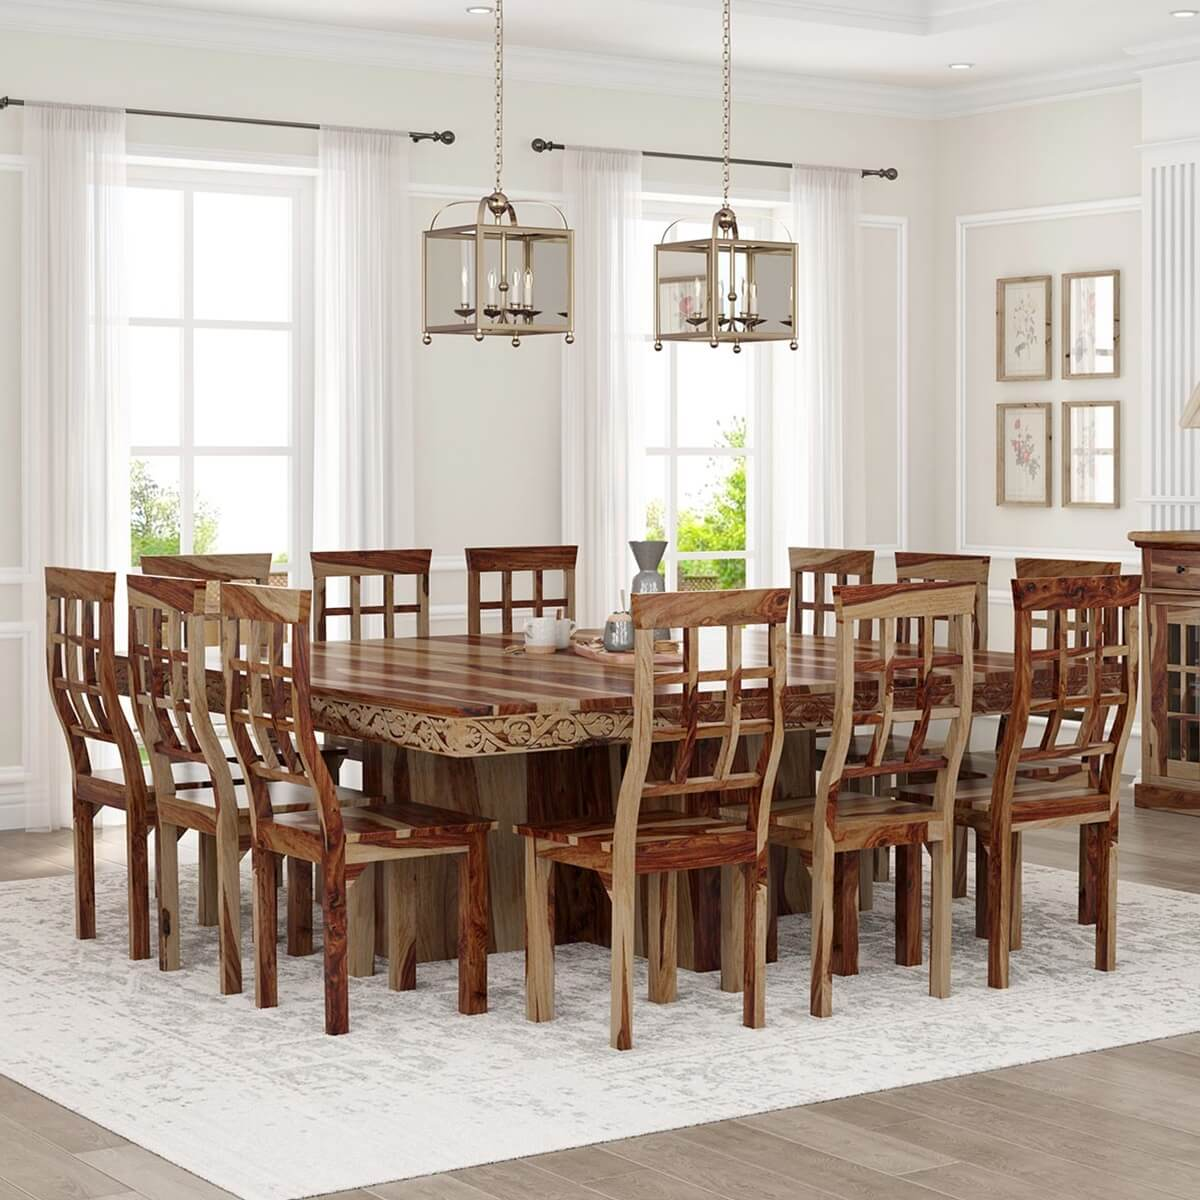 Dallas ranch large square dining room table and chair set Dining room table and chairs